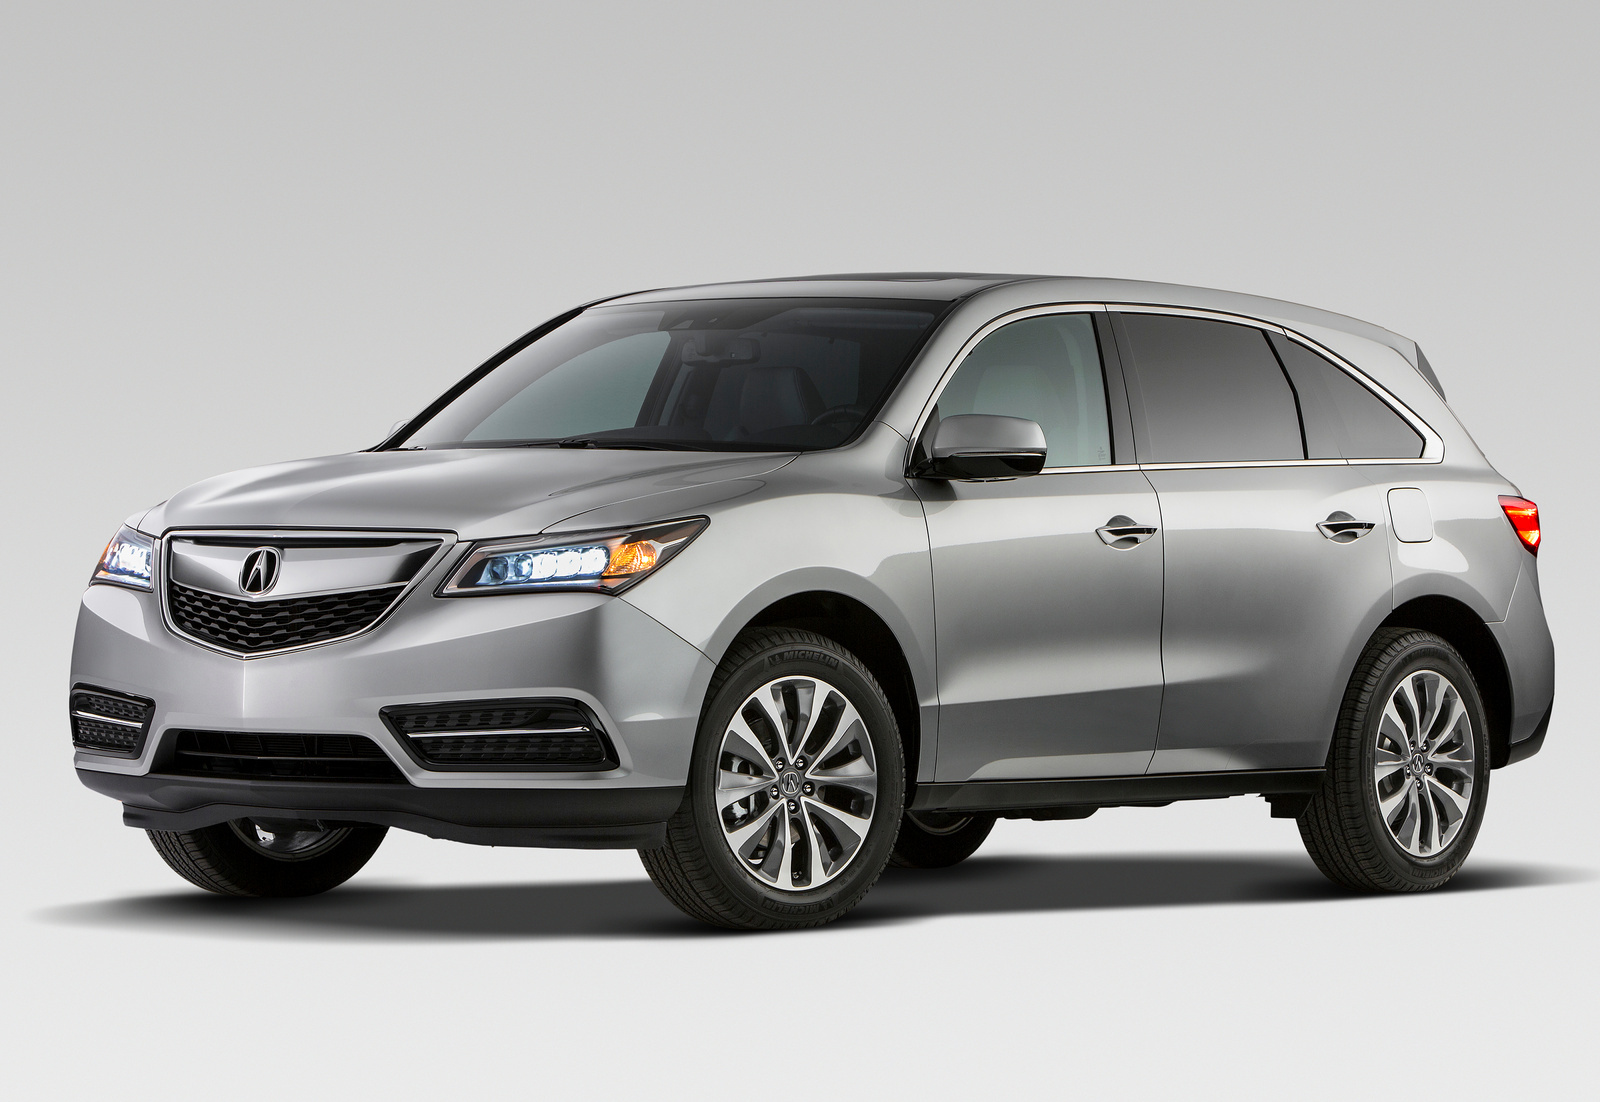 mdx used new prices car sale paid acura price value information research